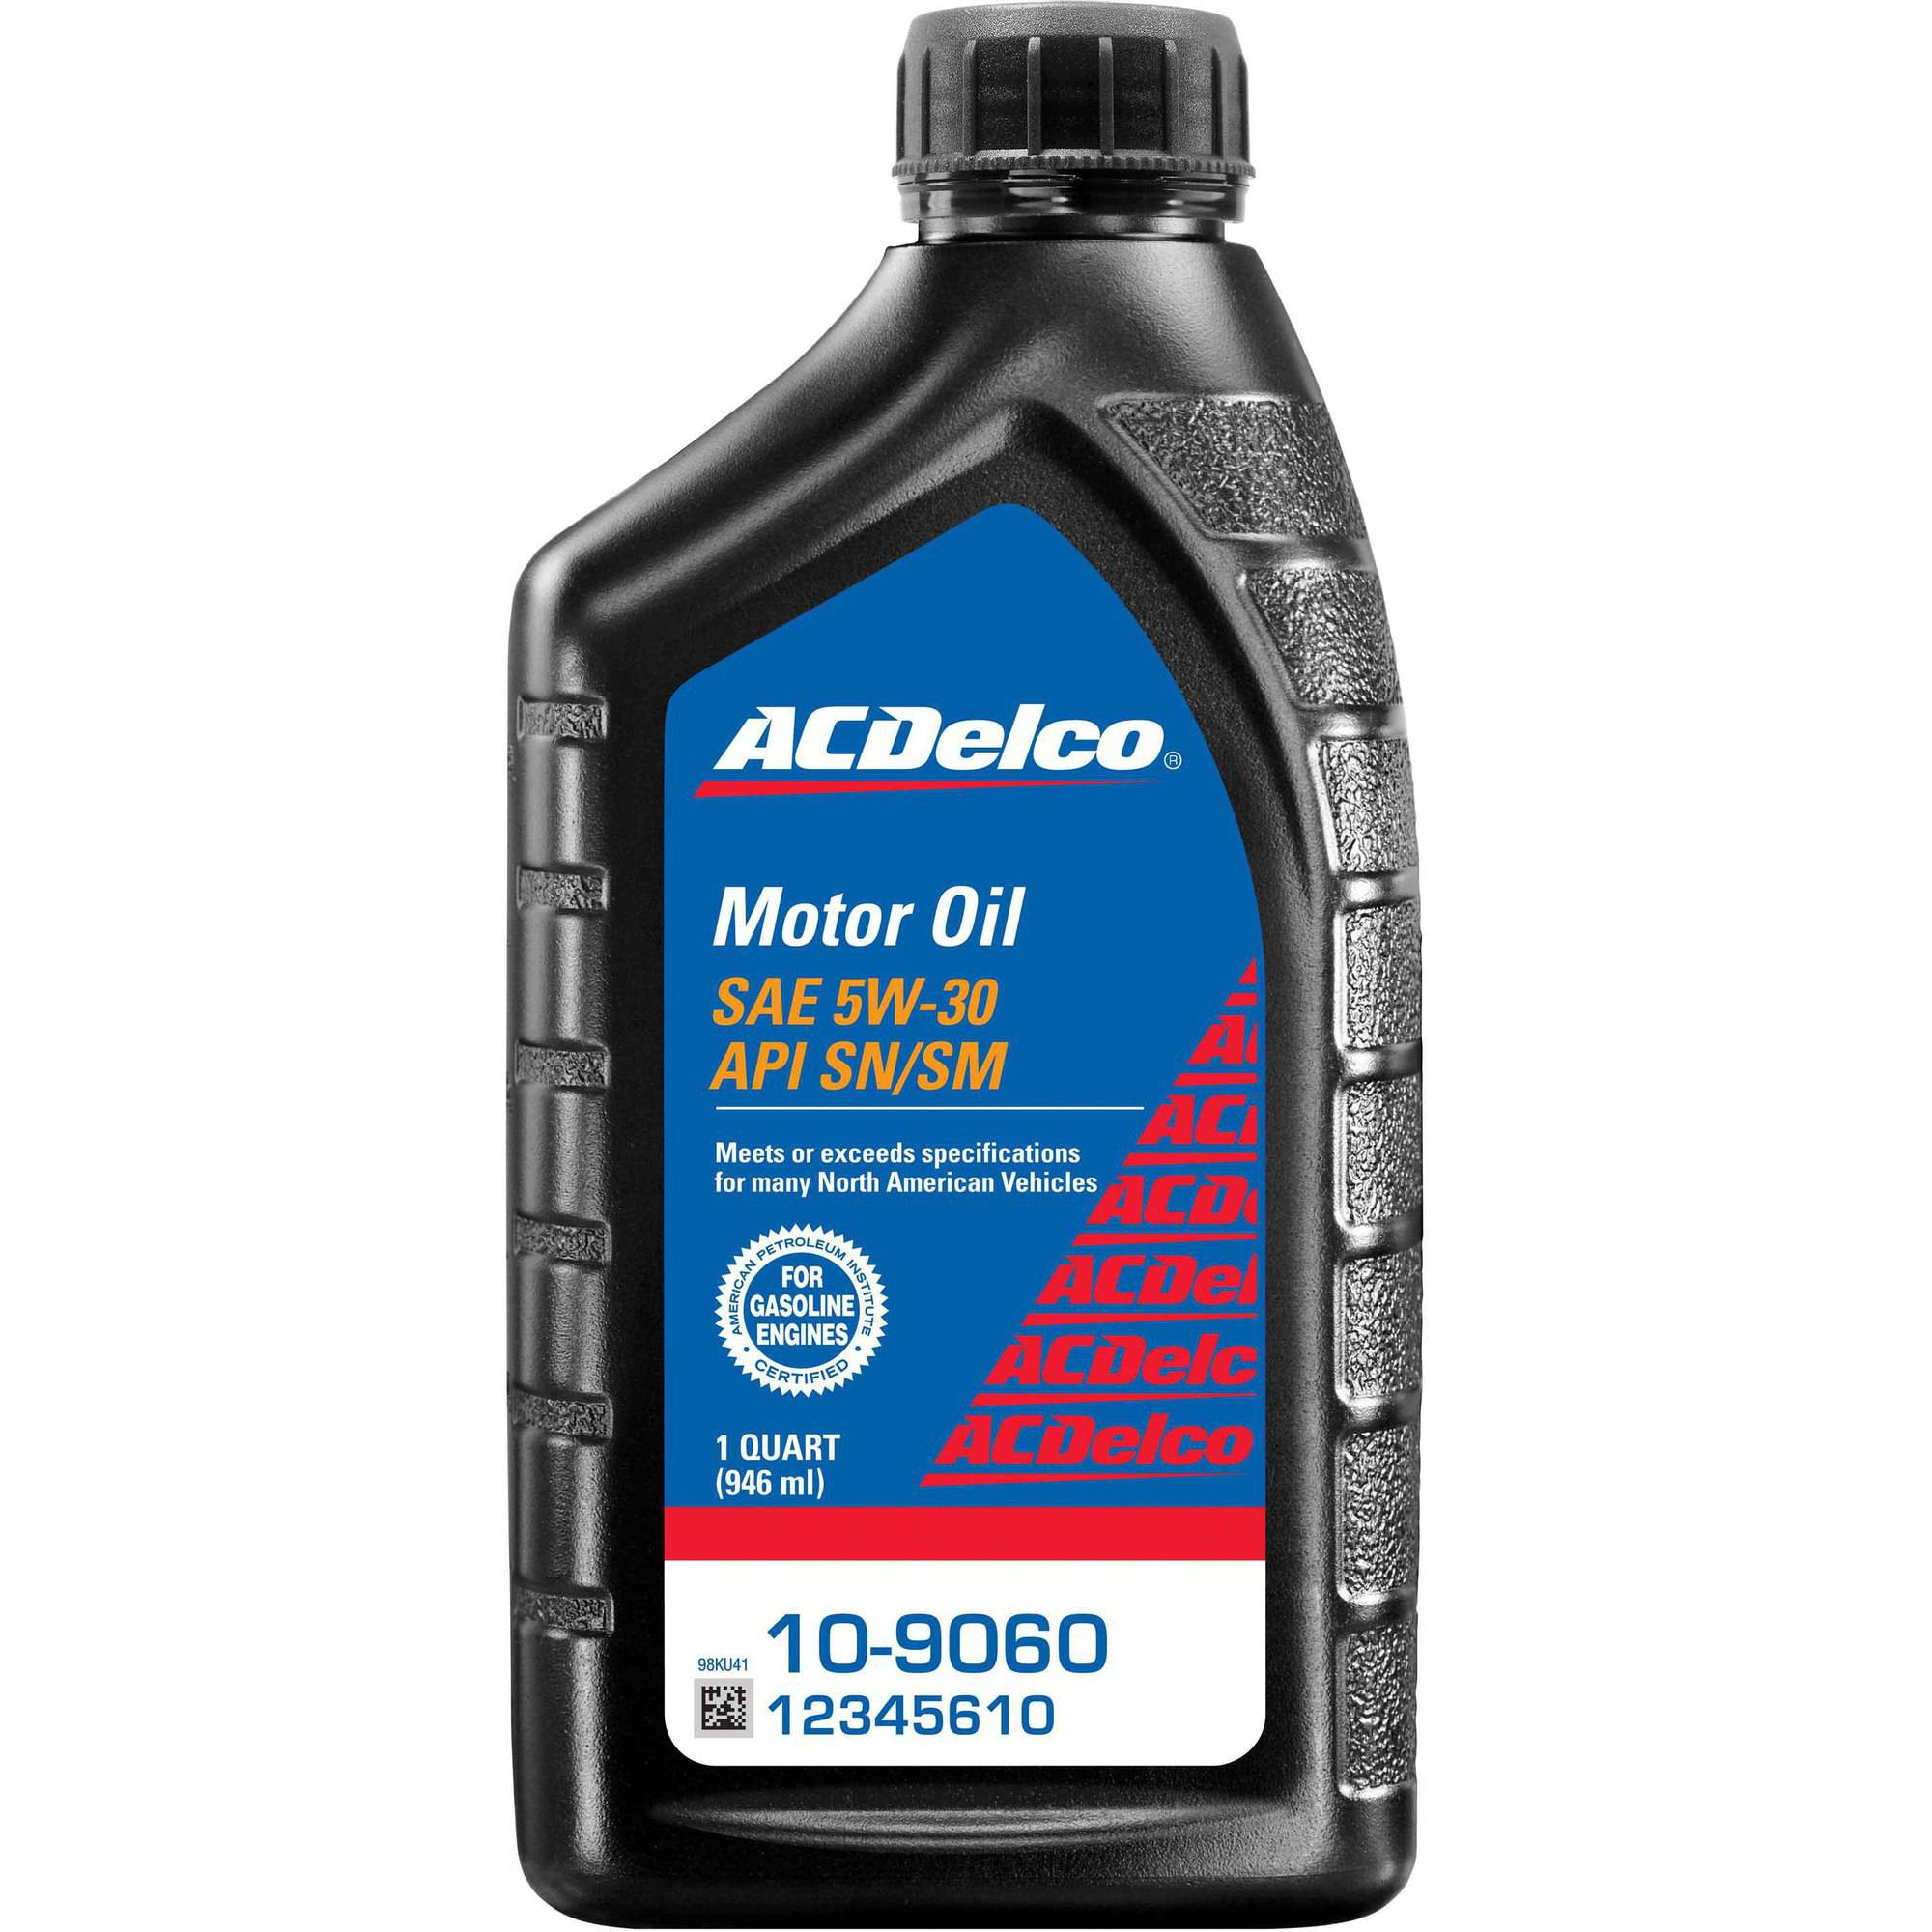 ACDelco 10-9060 5W30 Motor Oil by ACDelco